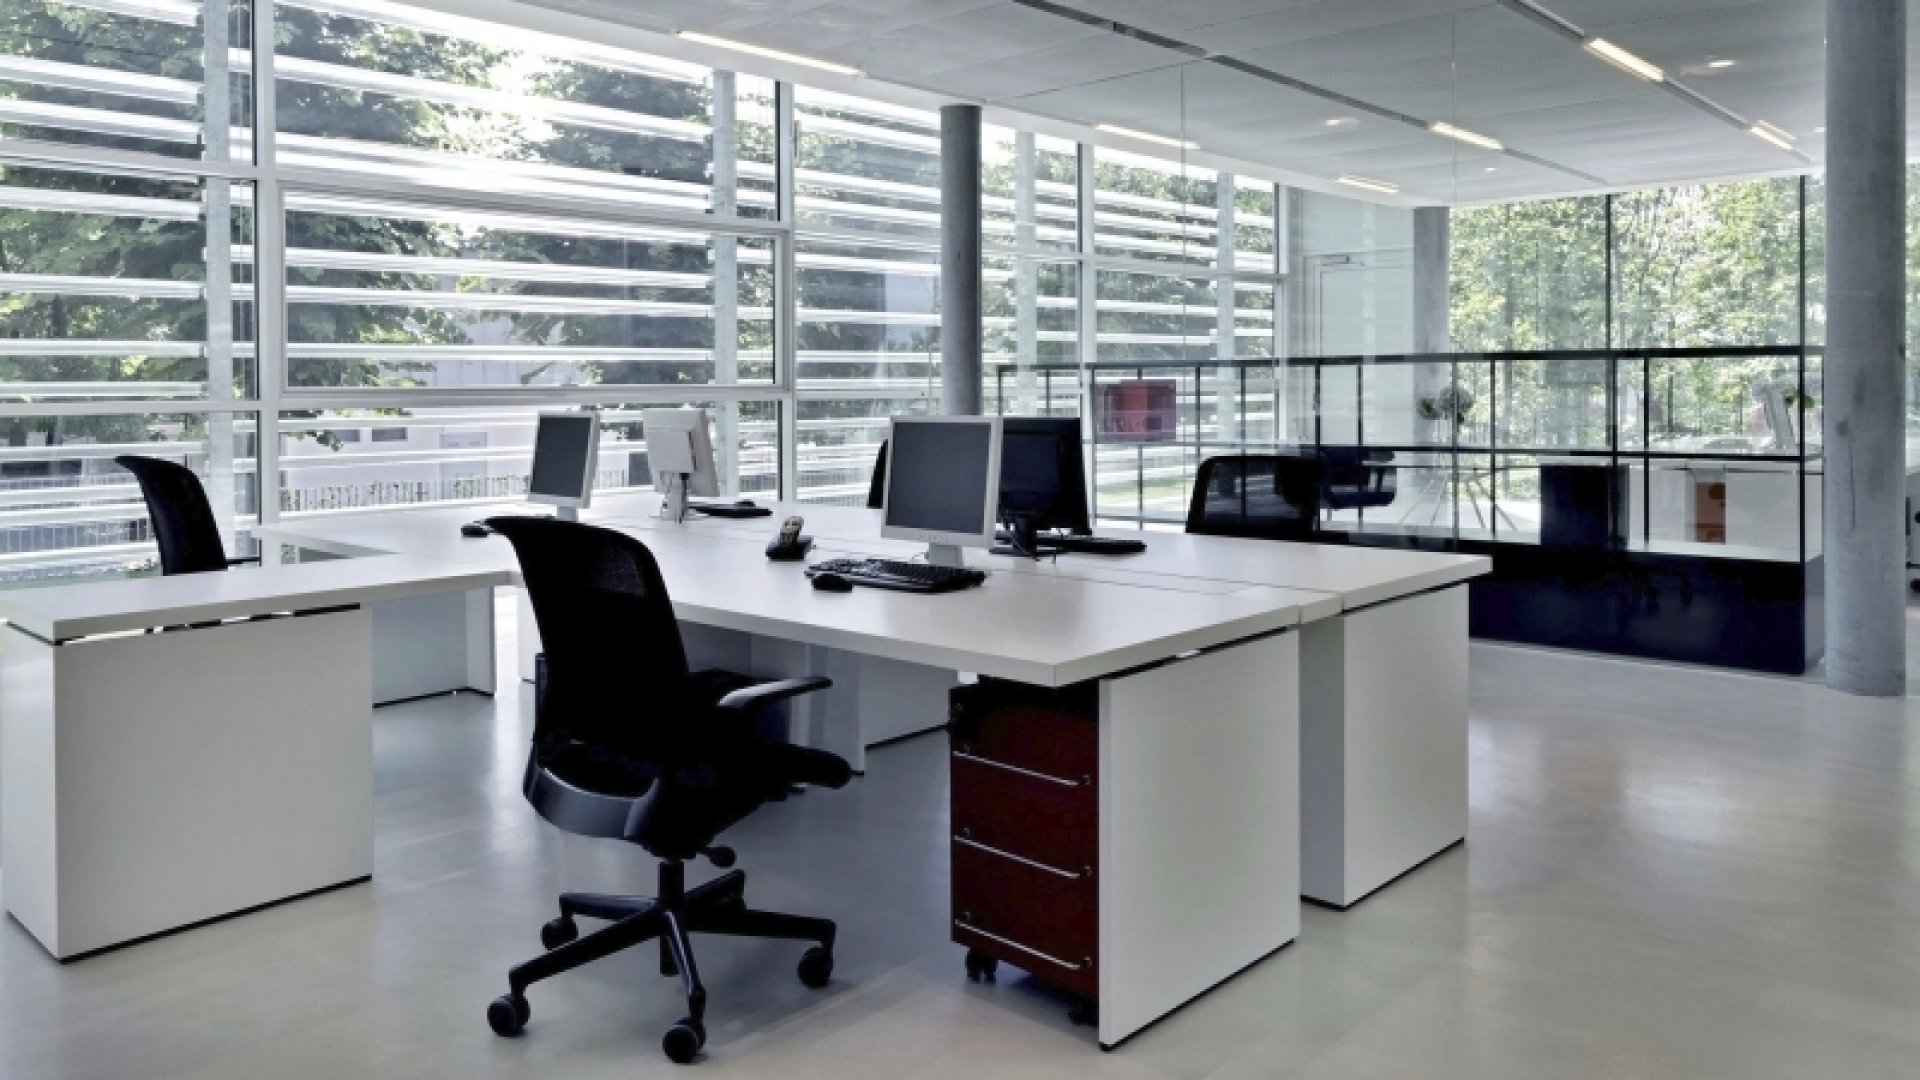 5 Reasons Not to Be the First One in the Office